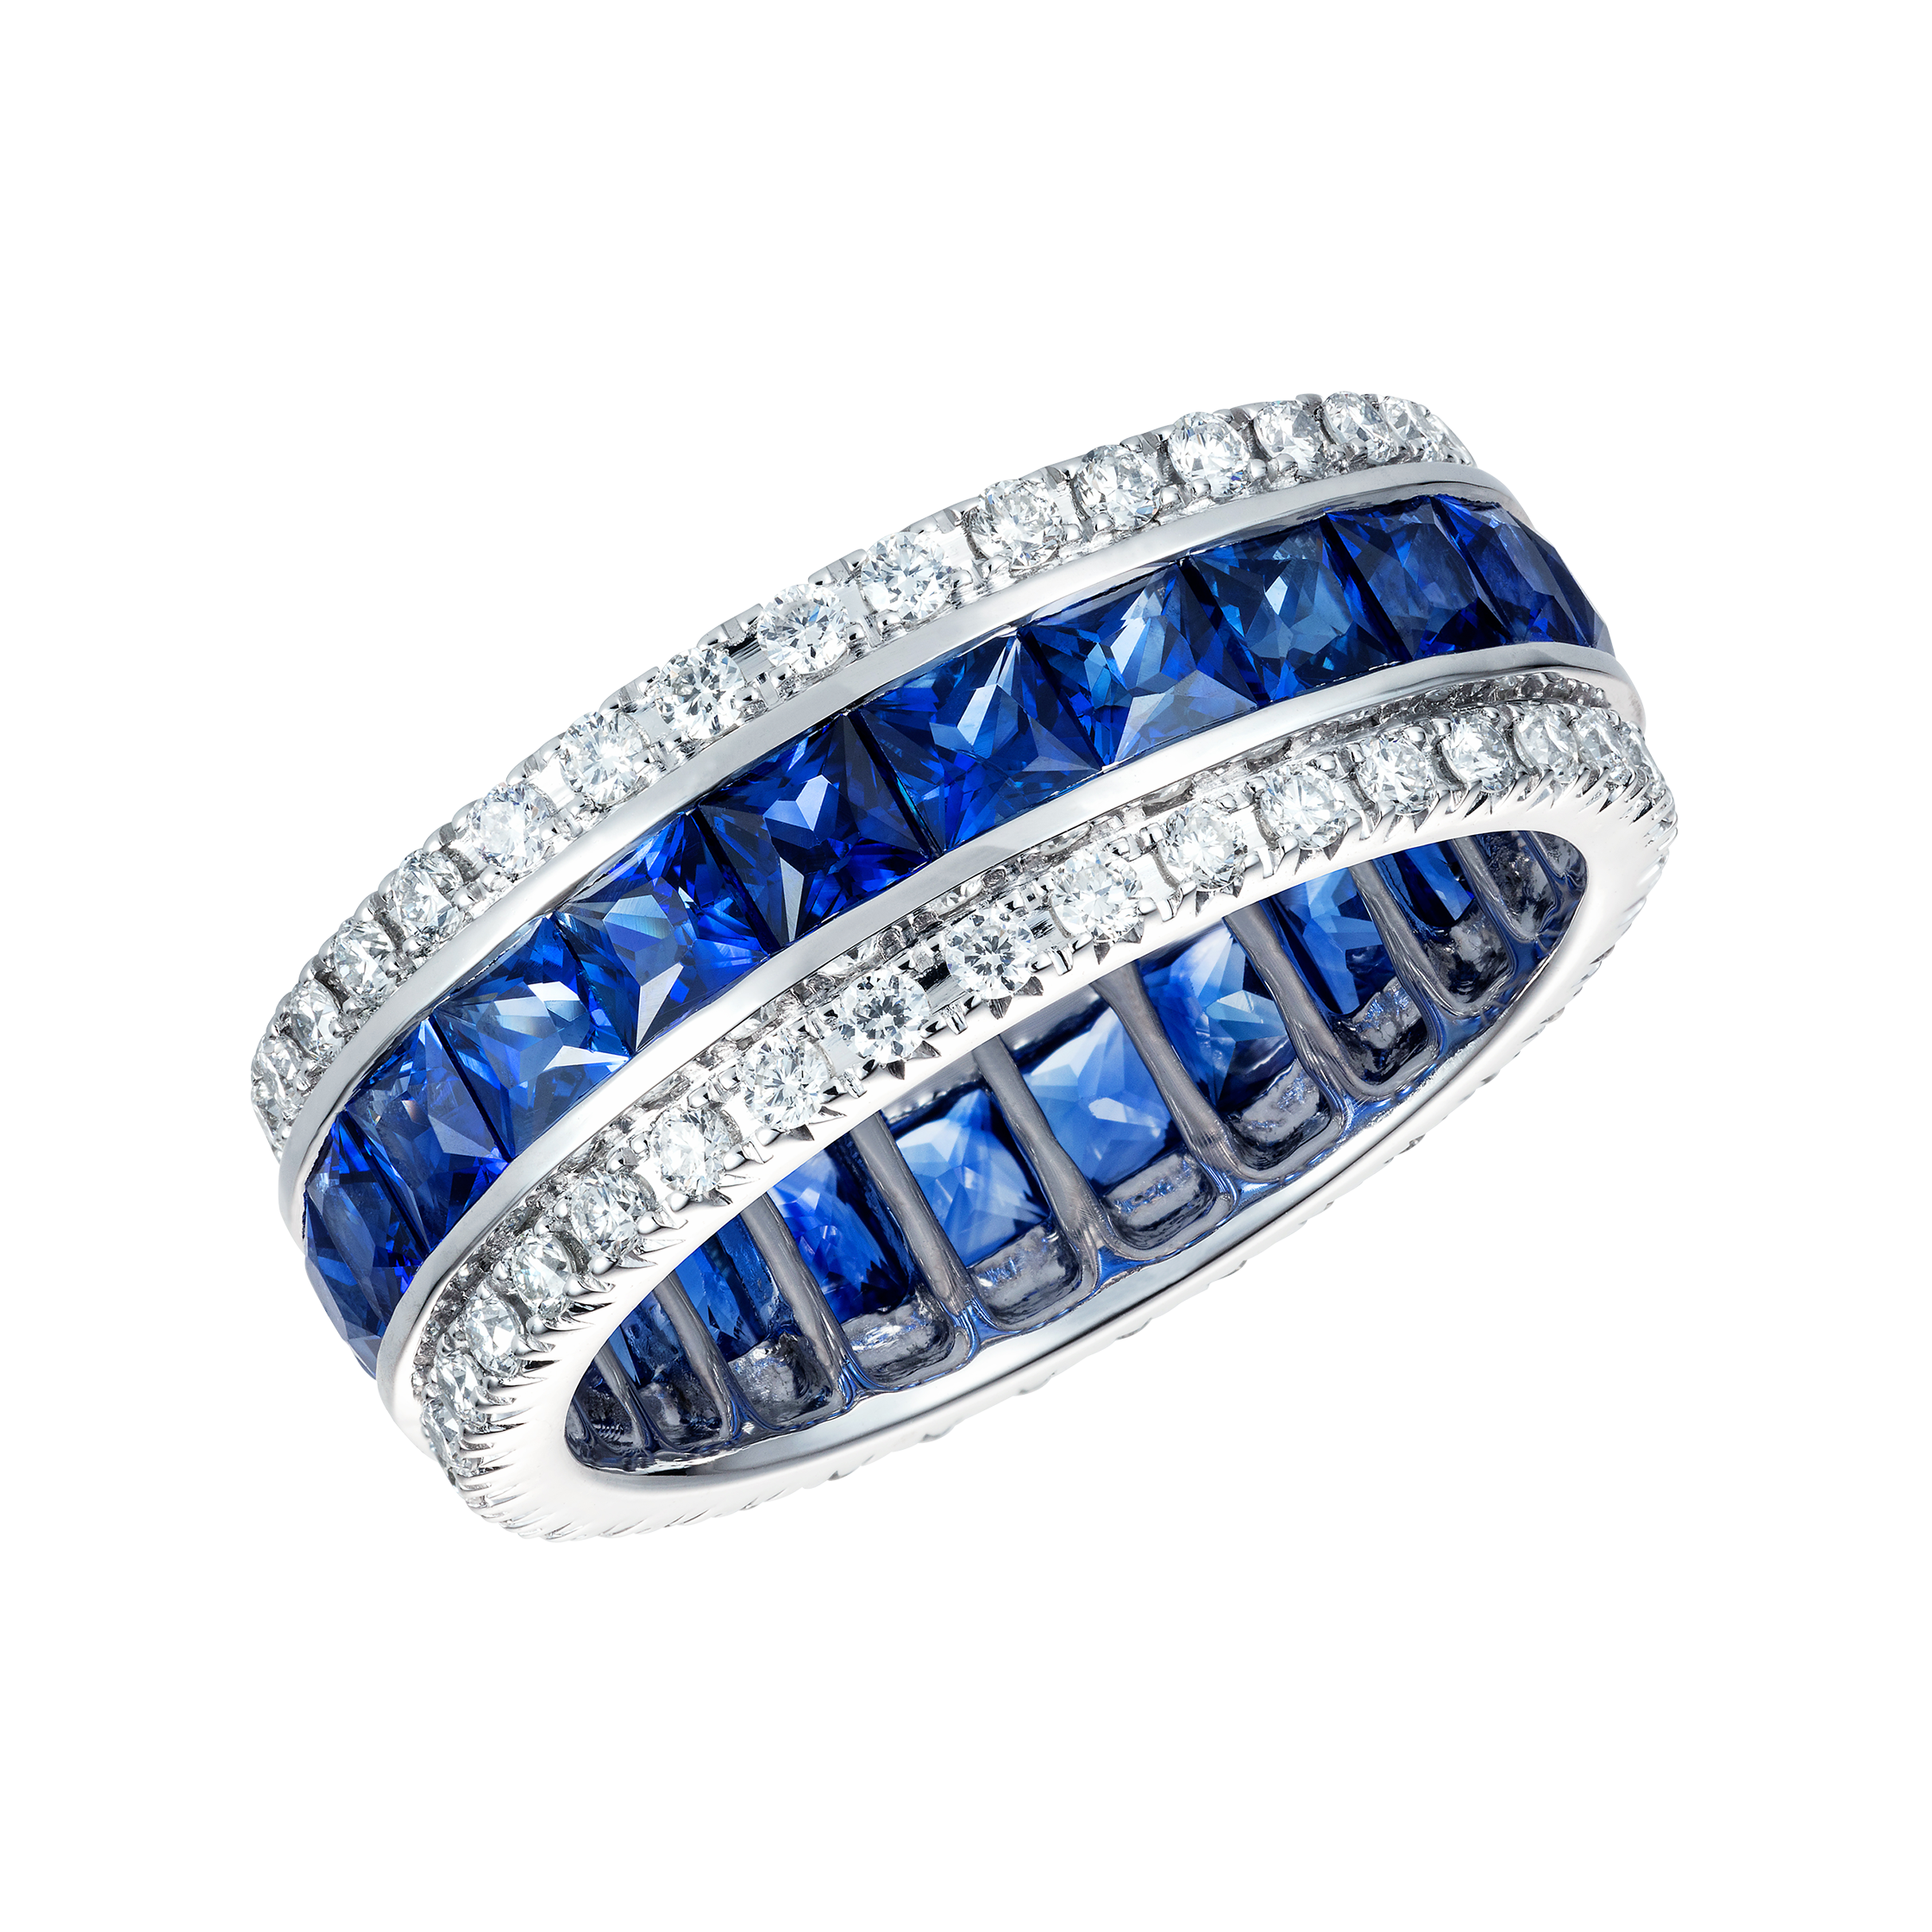 carizma bands p diamond sapphire carelle eternity band gump ring is s